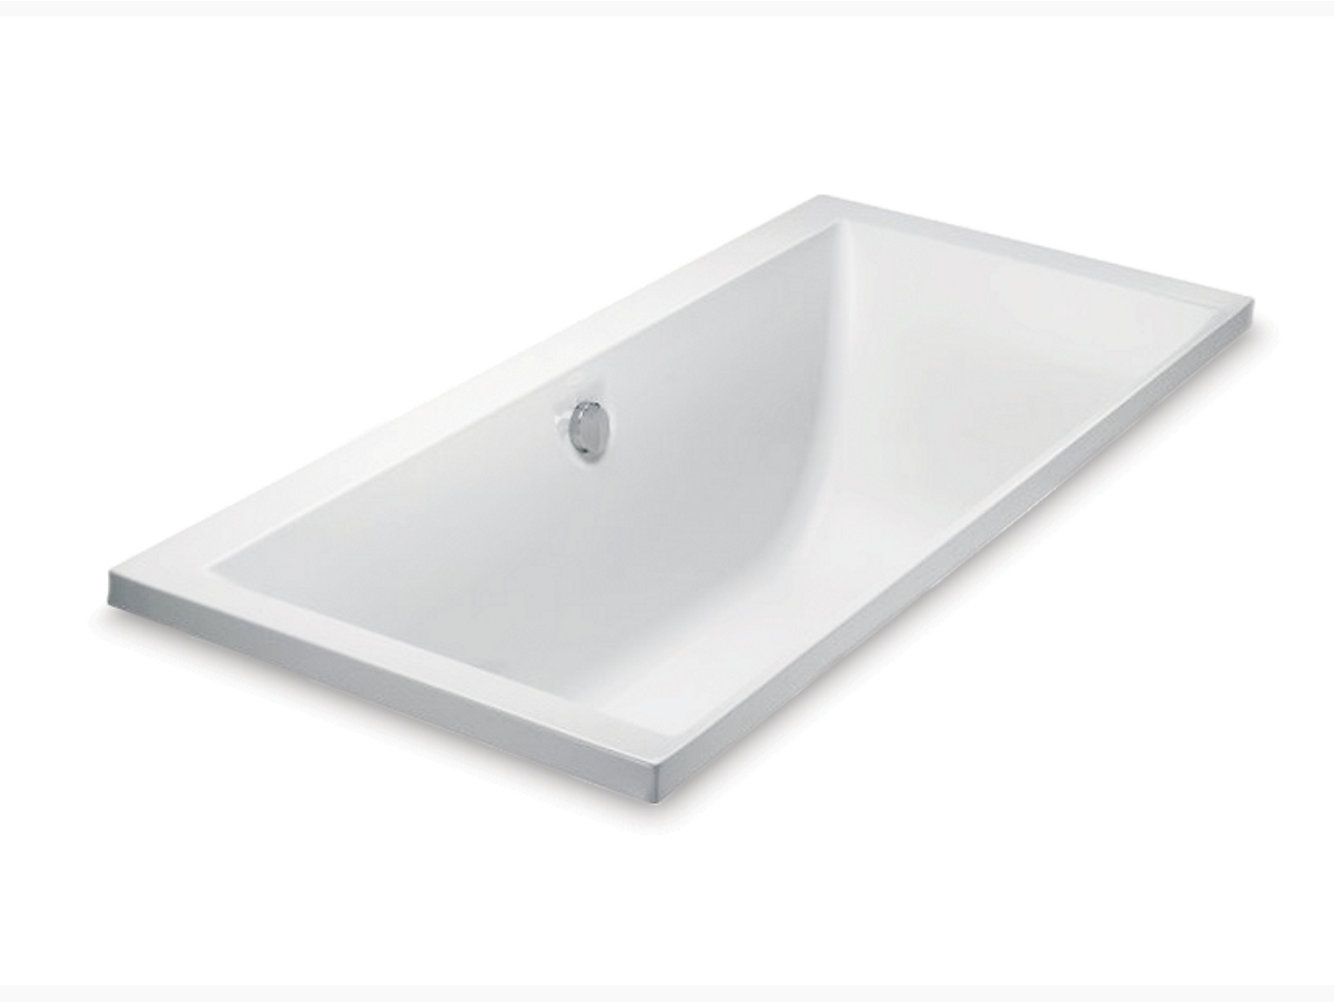 ny kohler lg detail asp whirlpools tubs tub k efaucets white serif jetted com jacuzzi